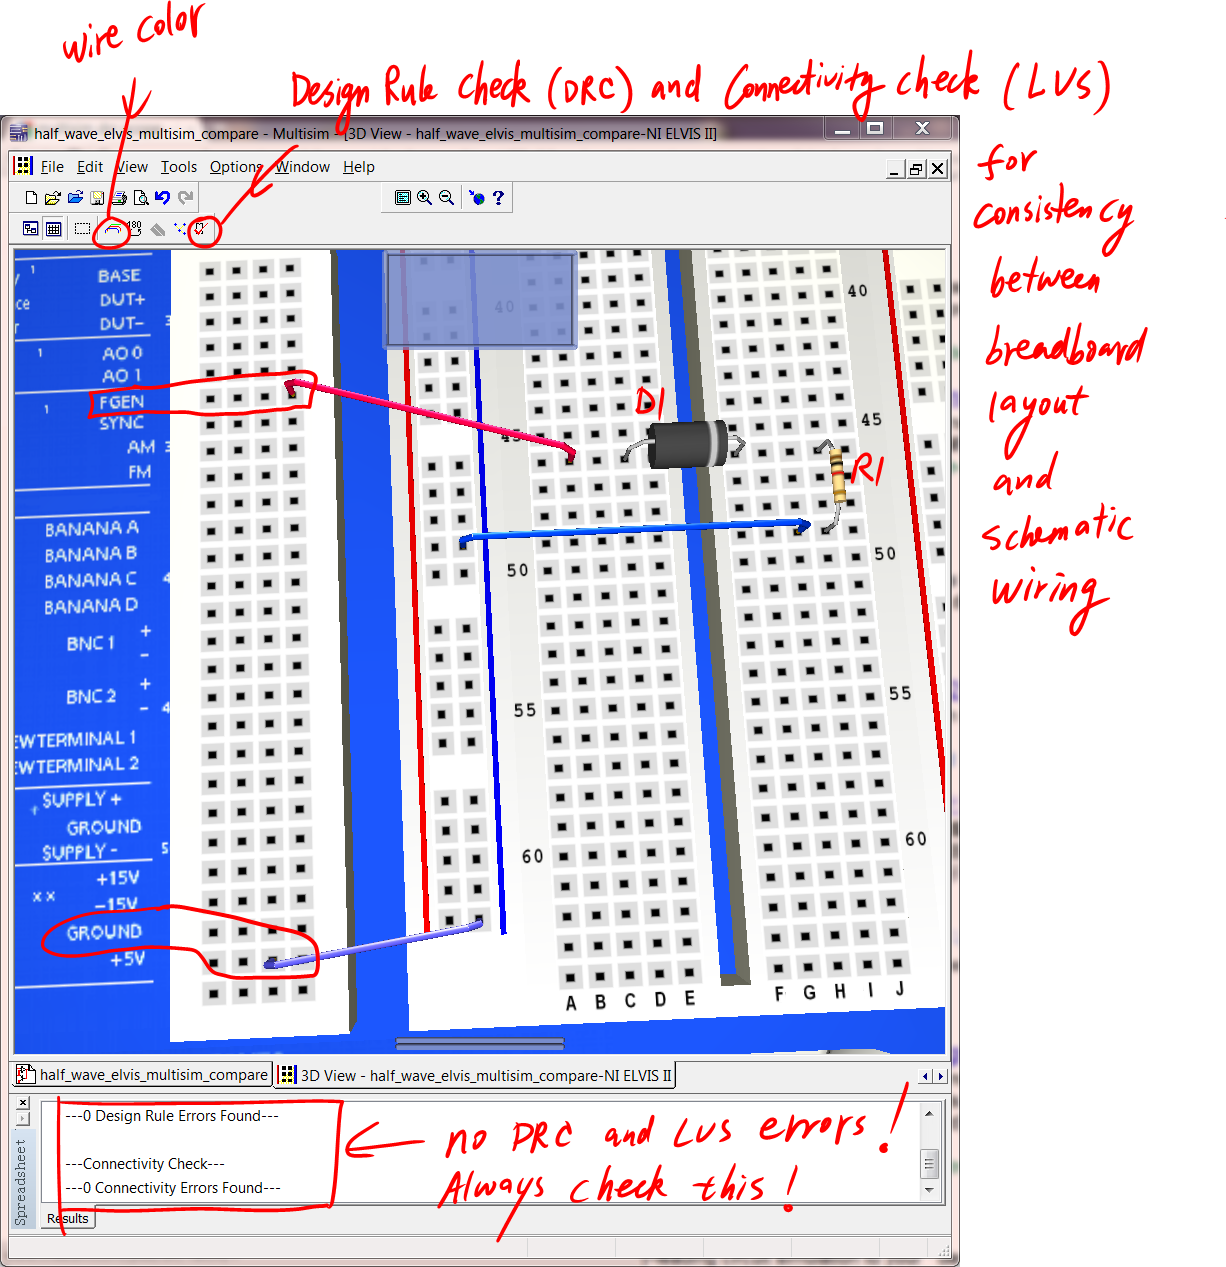 WRG-8579] Breadboard Wiring Diagram